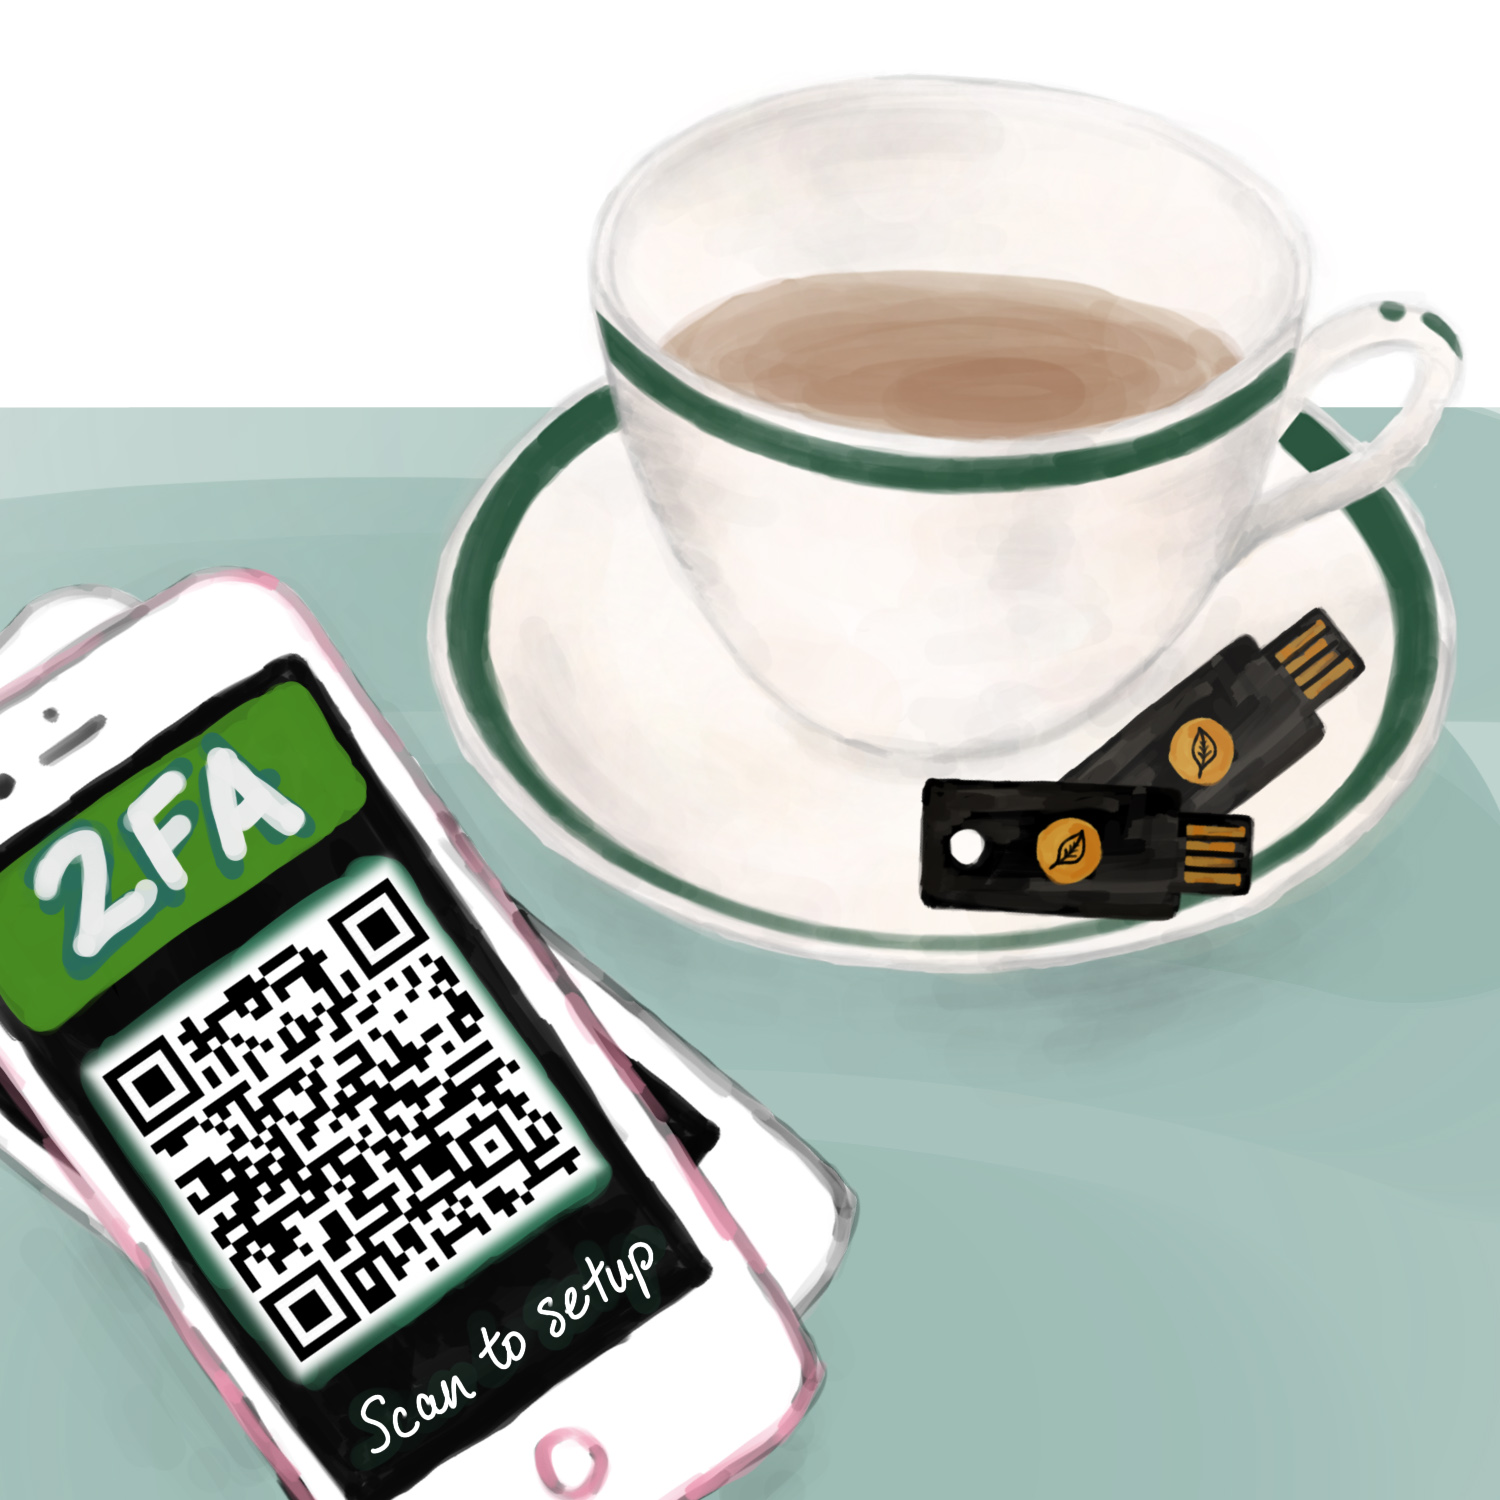 A teacup with two security keys on the saucer and a stack of two-phones, the top phone showing a QR code for setting up two-factor authentication